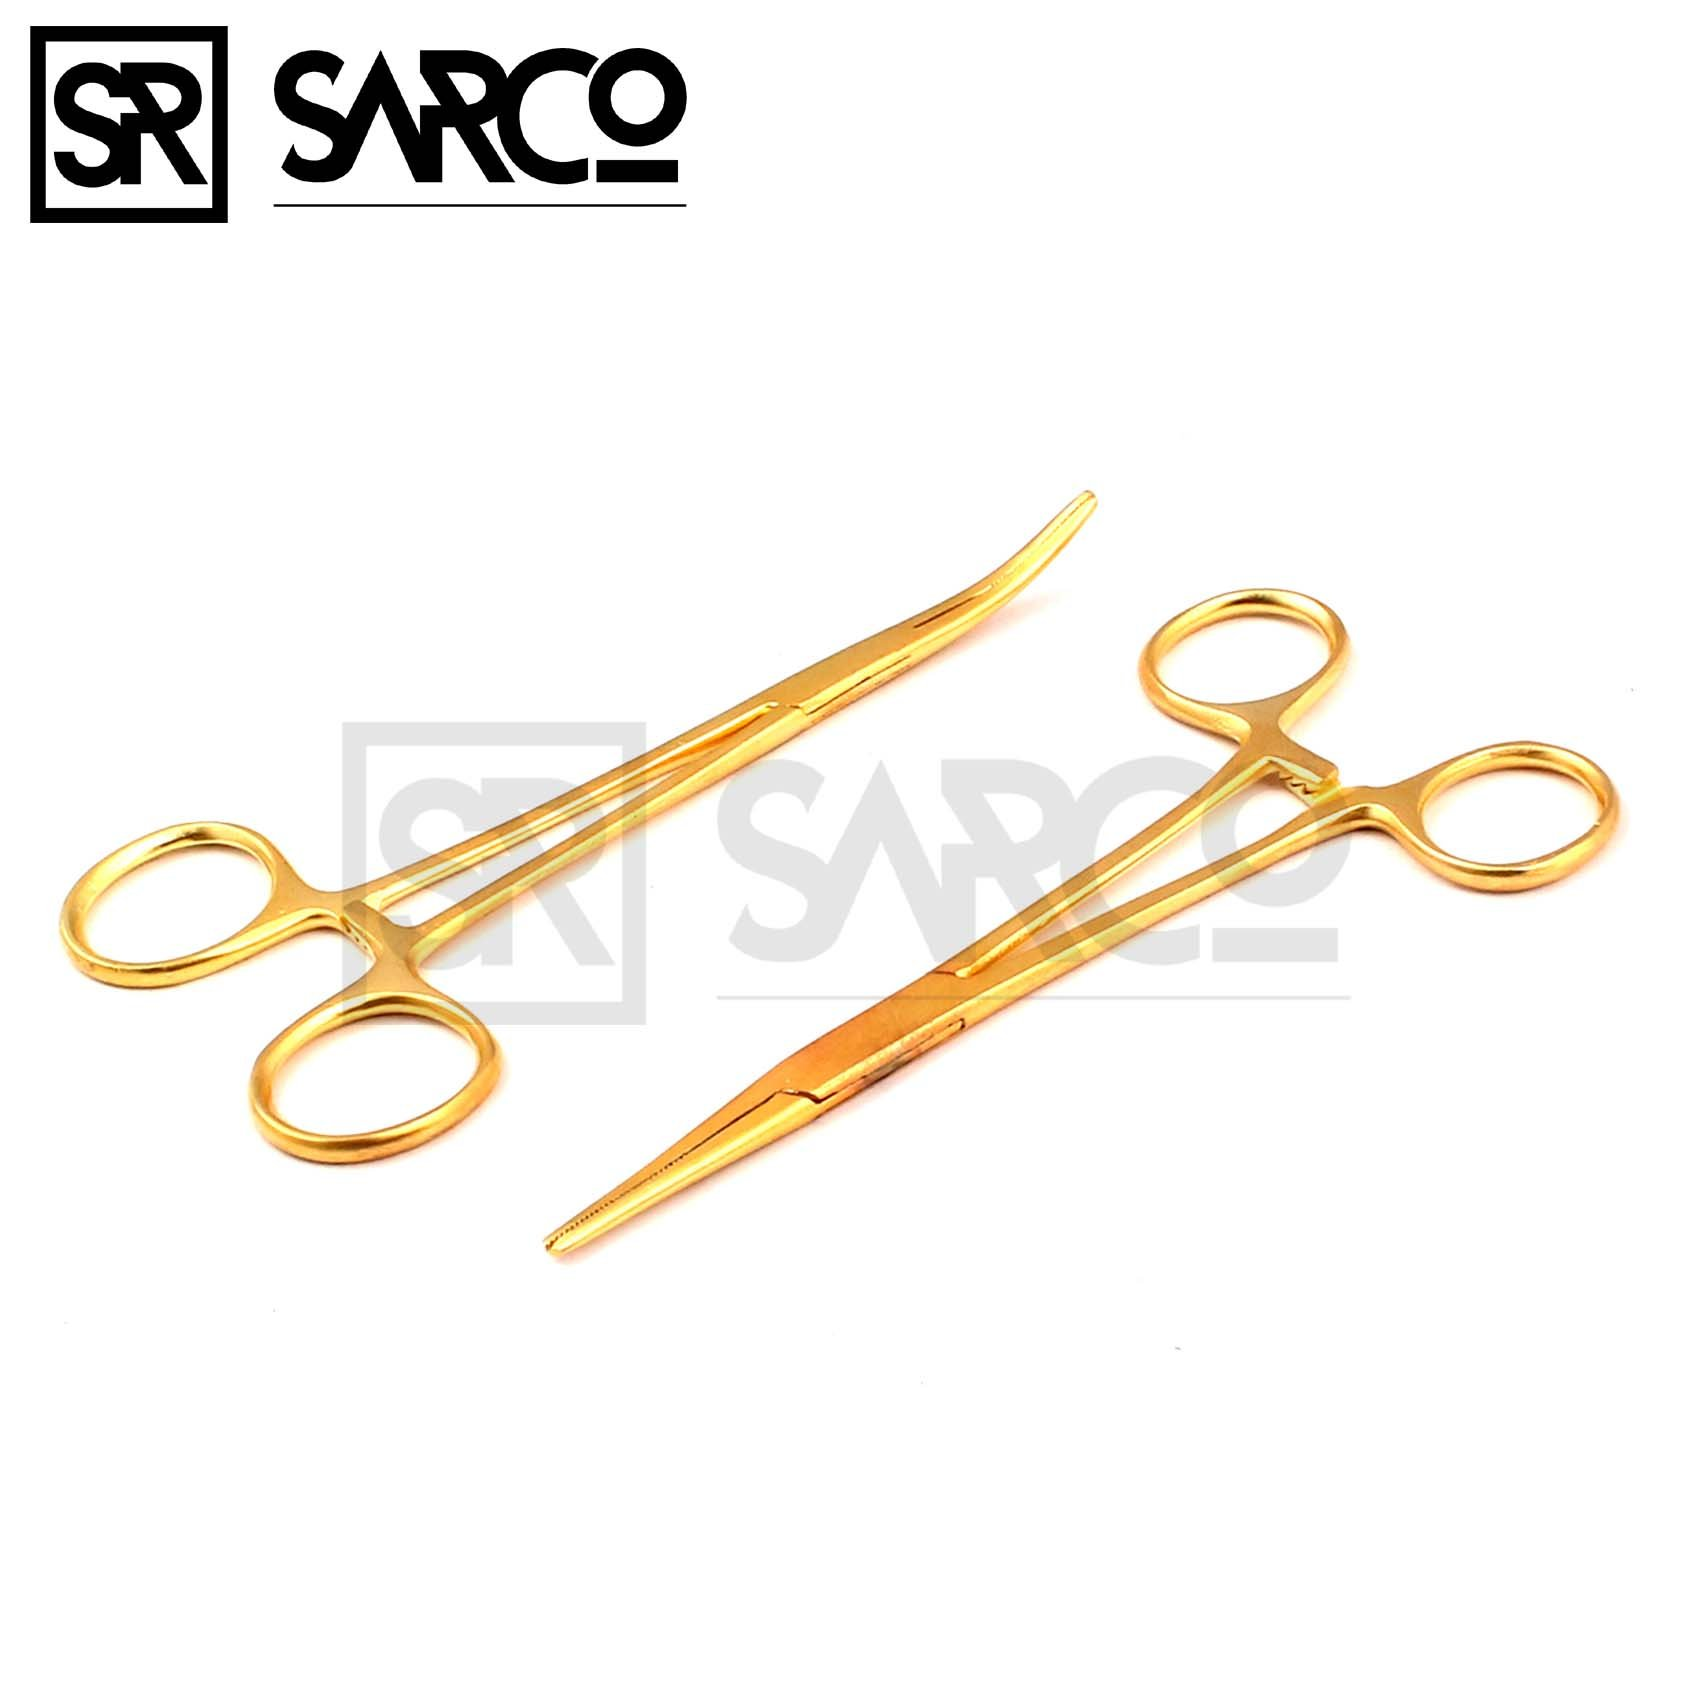 Sarco Set of 2 Gold Color Mosquito Hemostat Forceps 5'' Straight & Curved Stainless Steel